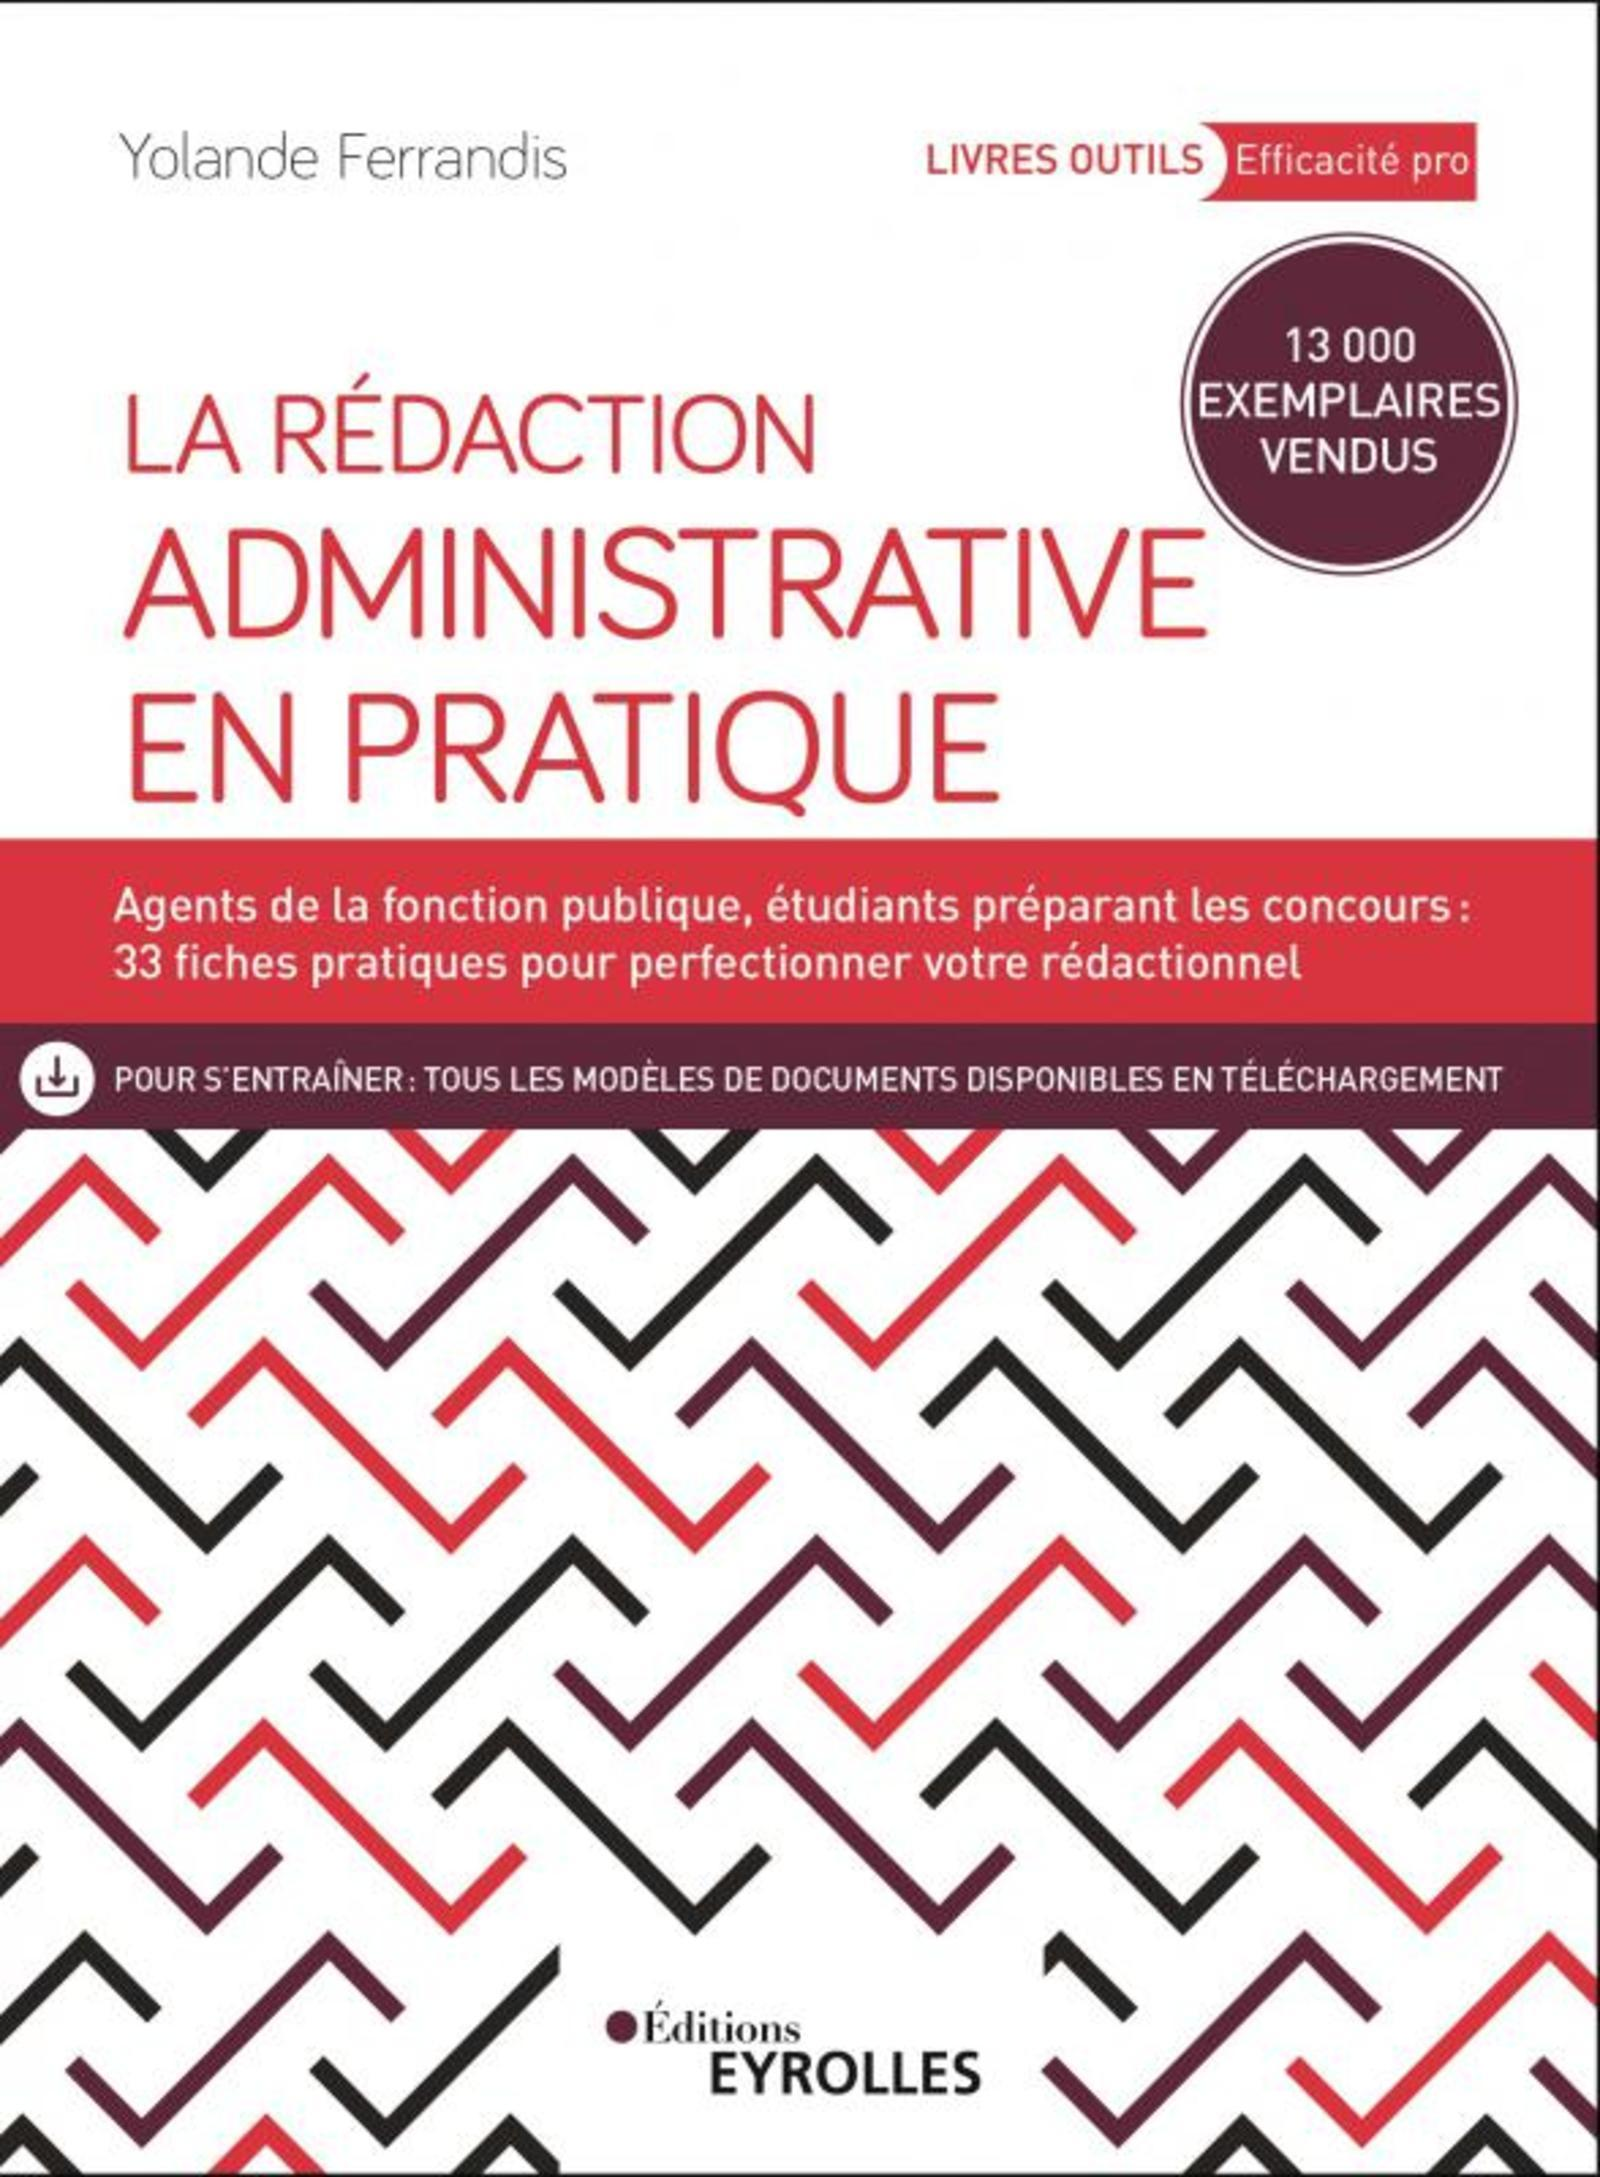 LA REDACTION ADMINISTRATIVE EN PRATIQUE